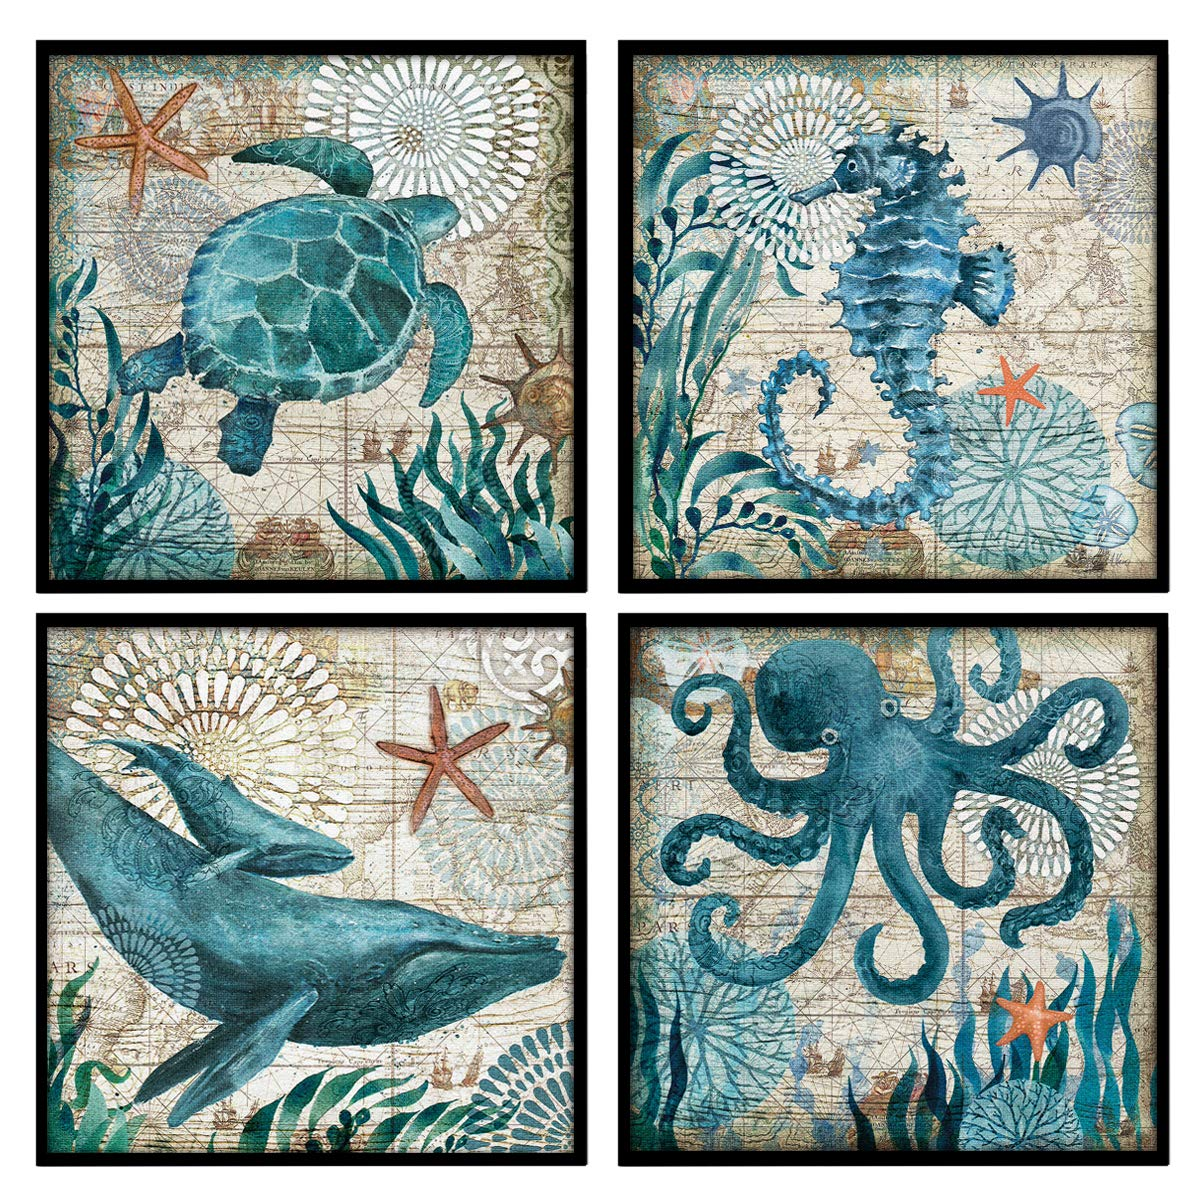 "YOOOAHU 4 Pieces Canvas Prints Home Wall Decor Art Collection of Marine Animals Watercolor Sea Turtle Seahorse Whale Octopus Ocean Animal Pictures Modern Artwork Ready to Hang -12""x12""x4 Panels(BLK)"